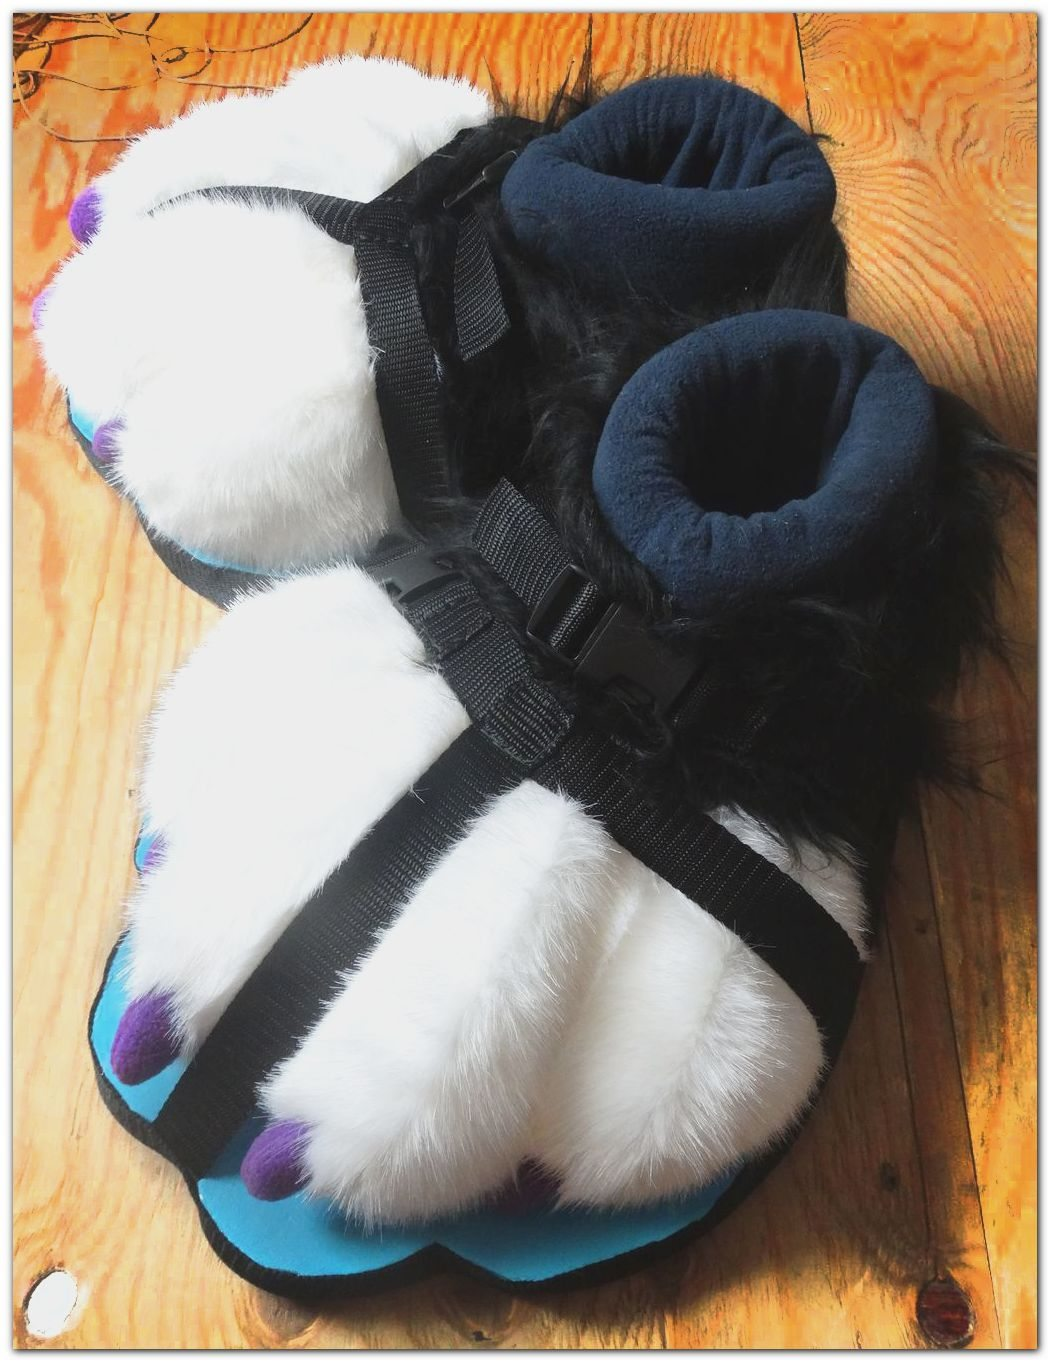 #feetpaws #fursuit #furr.clubc